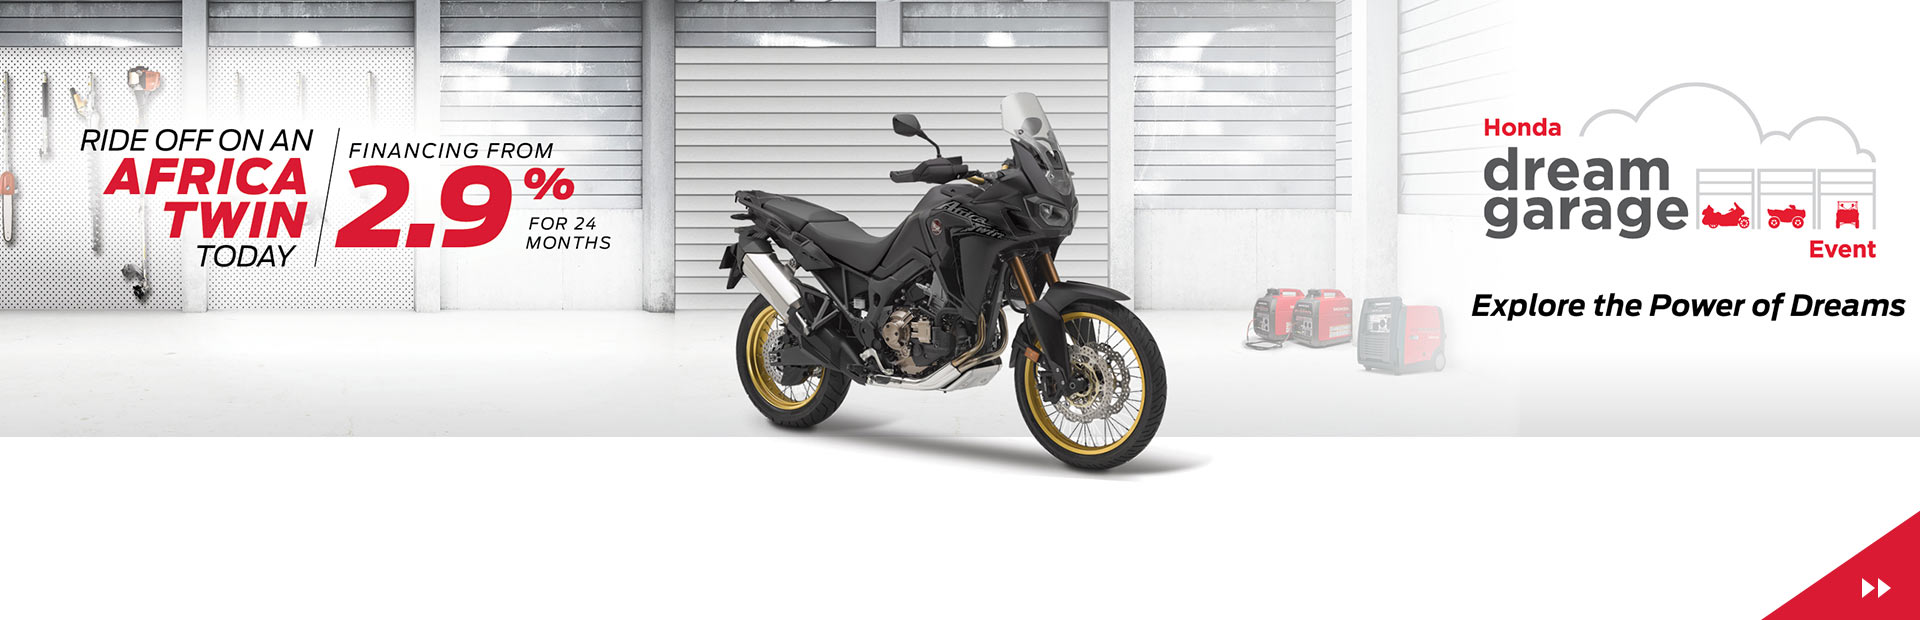 Ride Off on an Africa Twin Today with Financing from 2.9% for 24 months